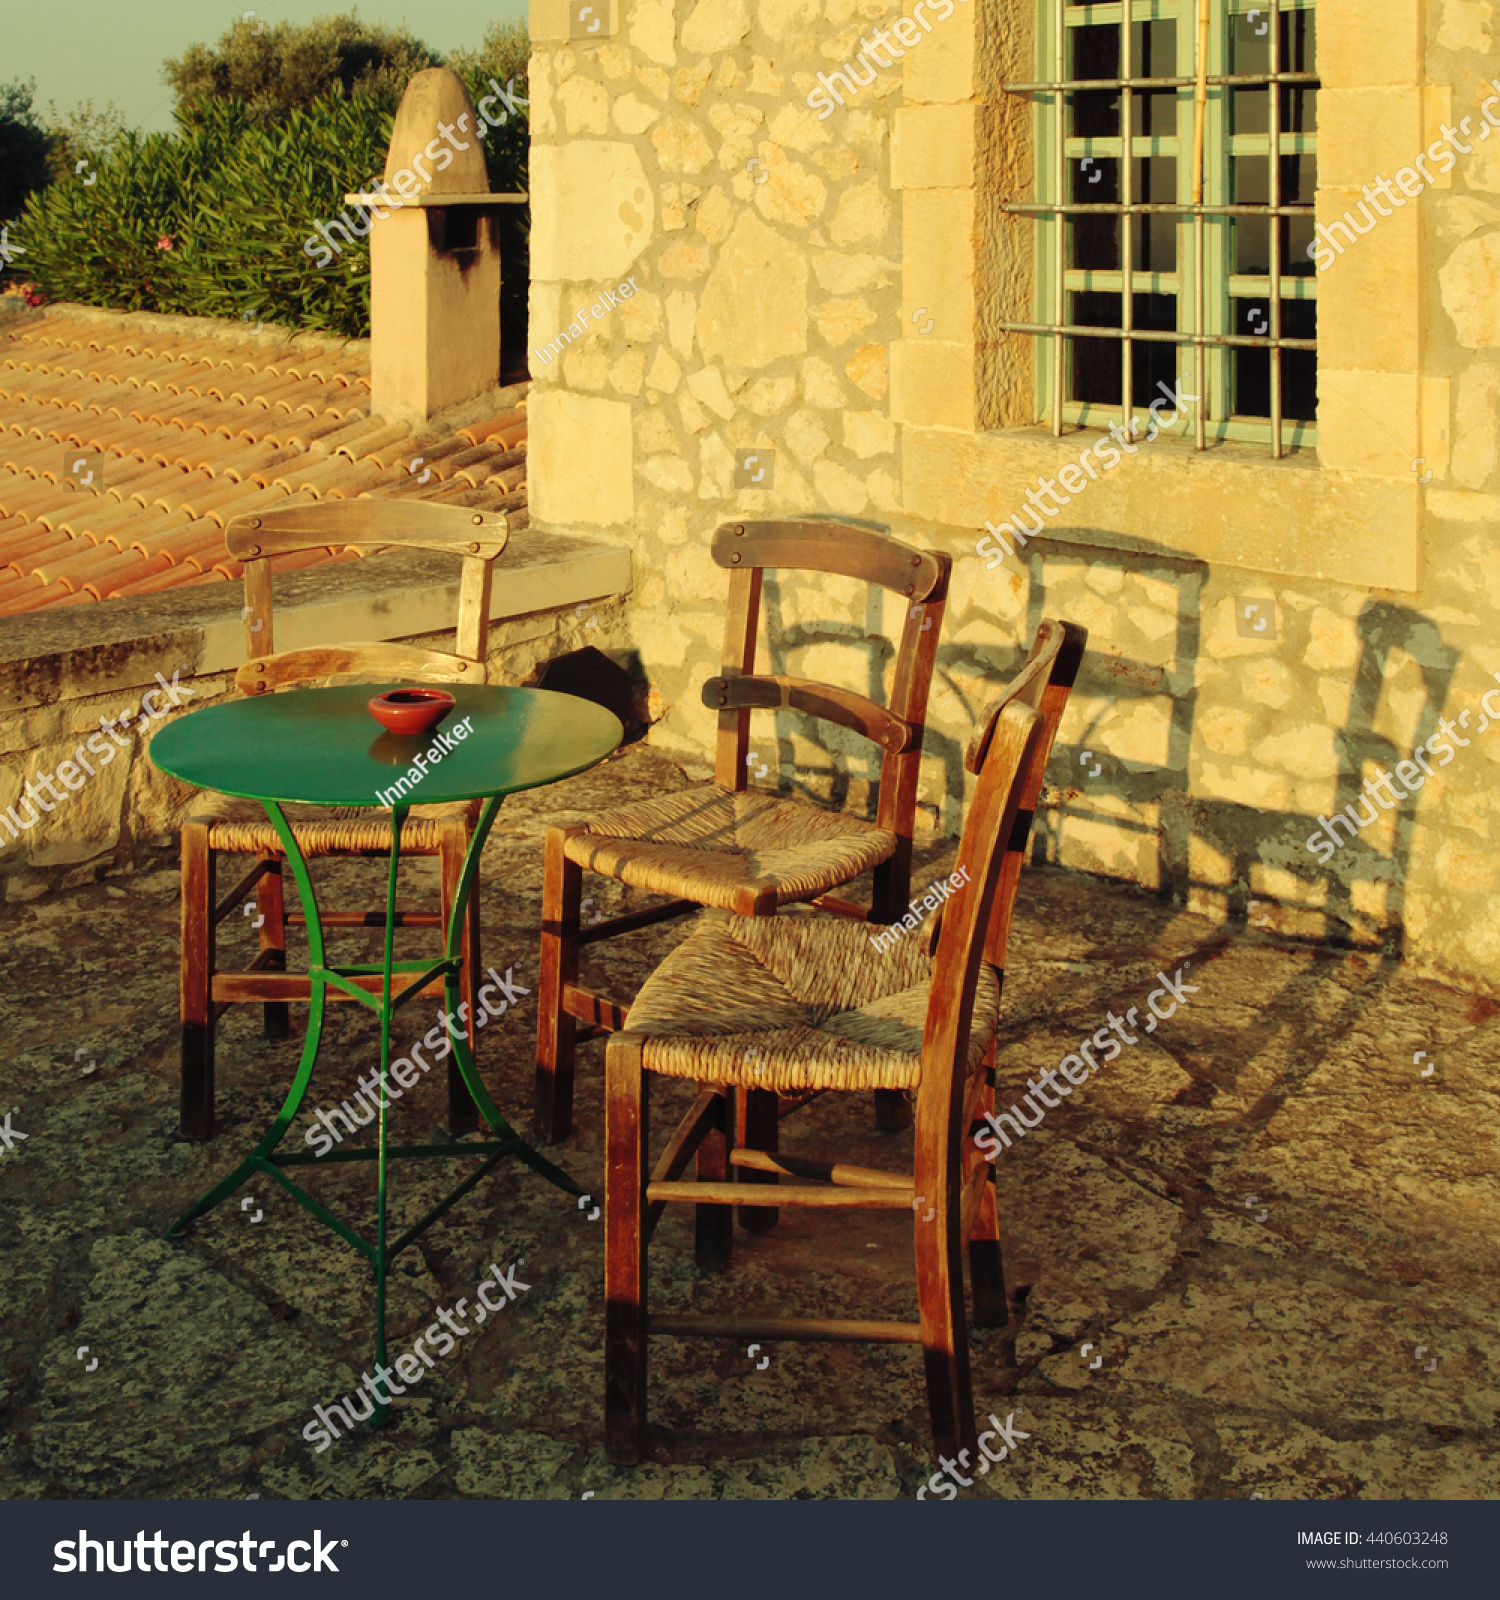 Greek Country Outdoor Restaurant On Roof Stock Photo Edit Now 440603248